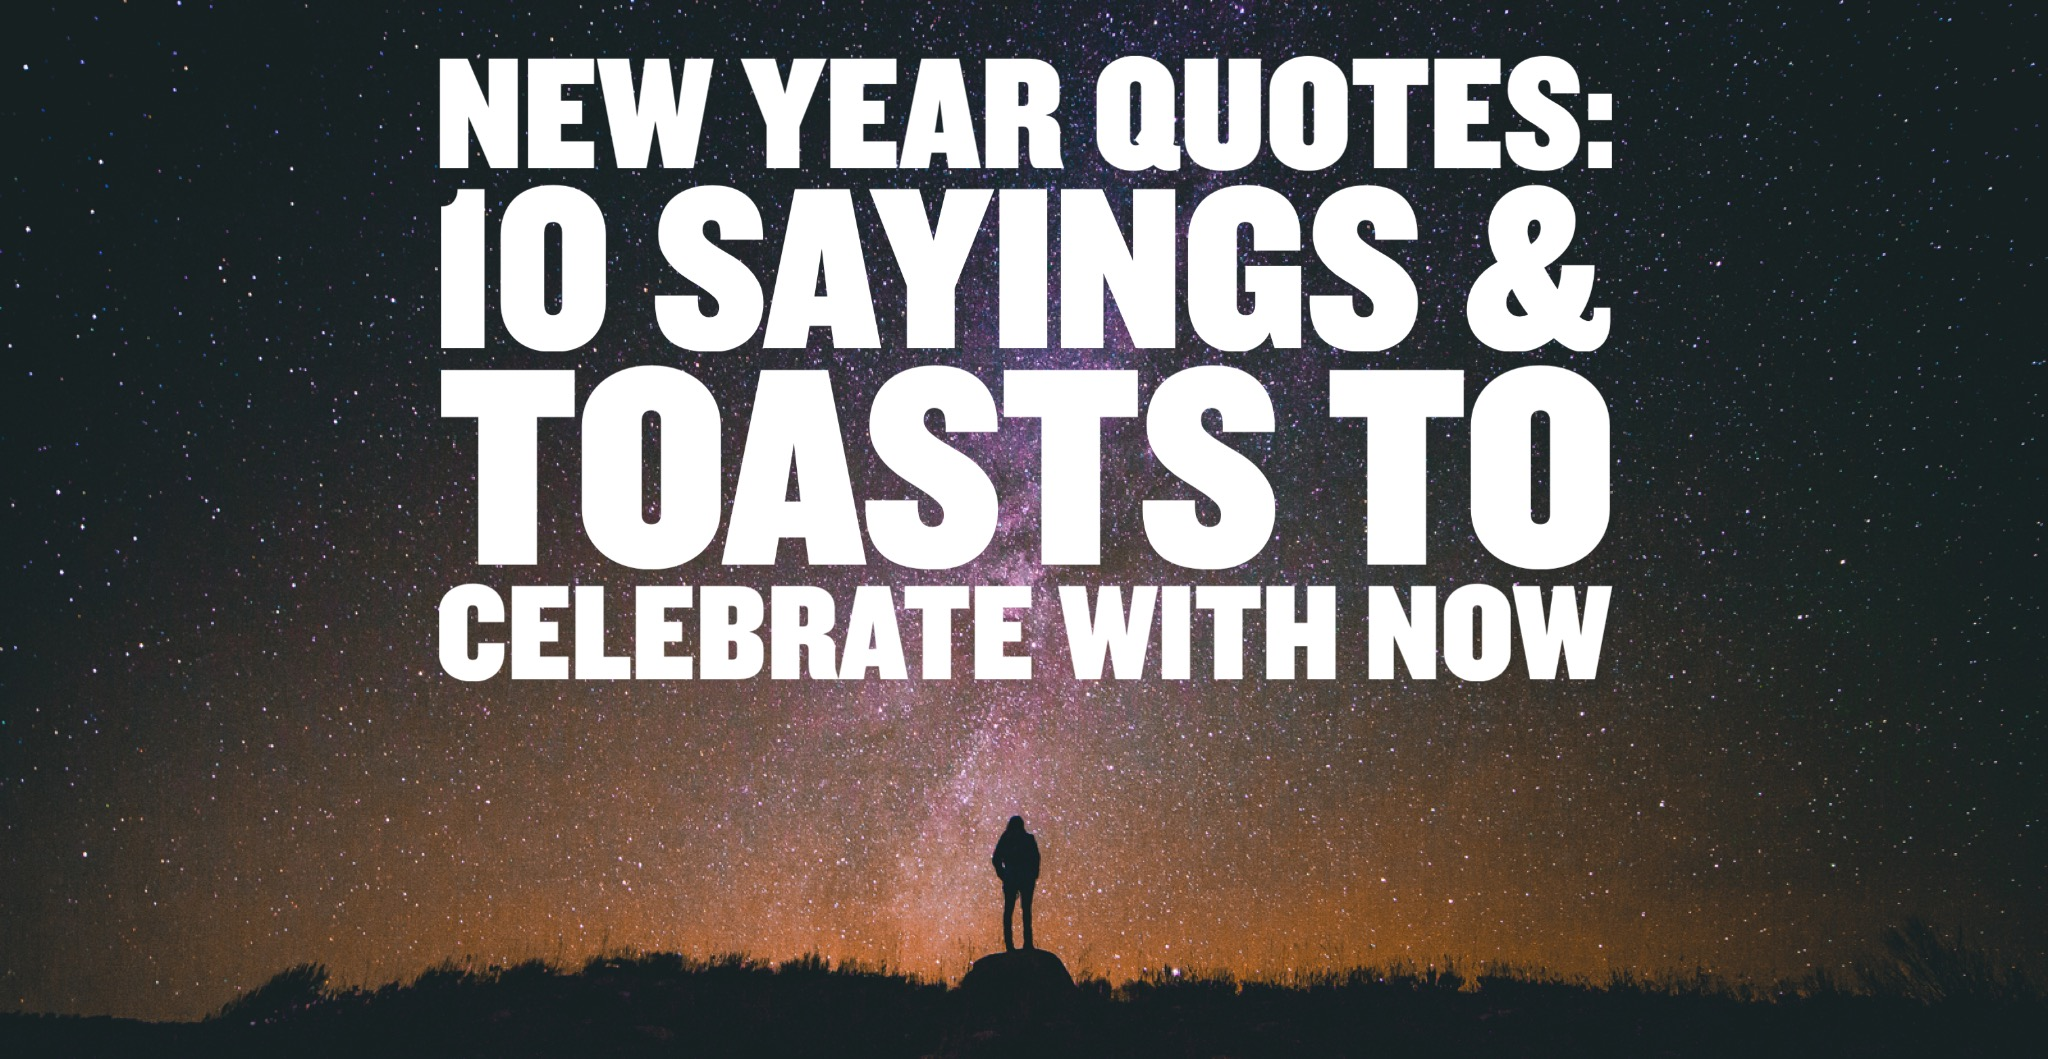 New Year Quotes: 10 Sayings & Toasts To Celebrate With